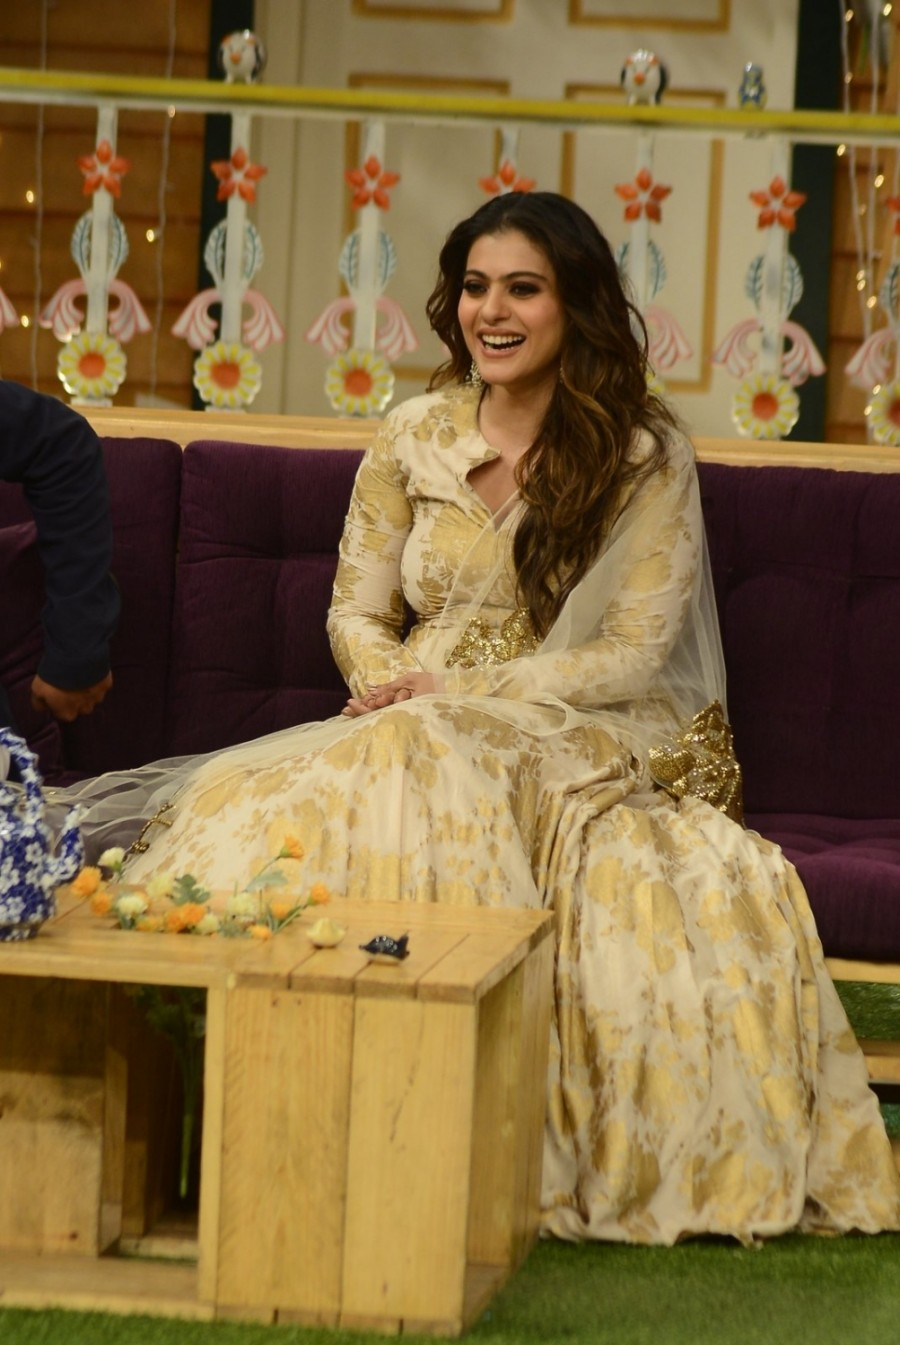 Ajay Devgan,Kajol,Ajay Devgan and Kajol,Shivaay at Kapil Sharma Show,Kapil Sharma Show,Shivaay movie promotion,Shivaay promotion,Ajay Devgan and Kajol at Kapil Sharma Show,Shivaay on the sets of The Kapil Sharma Show